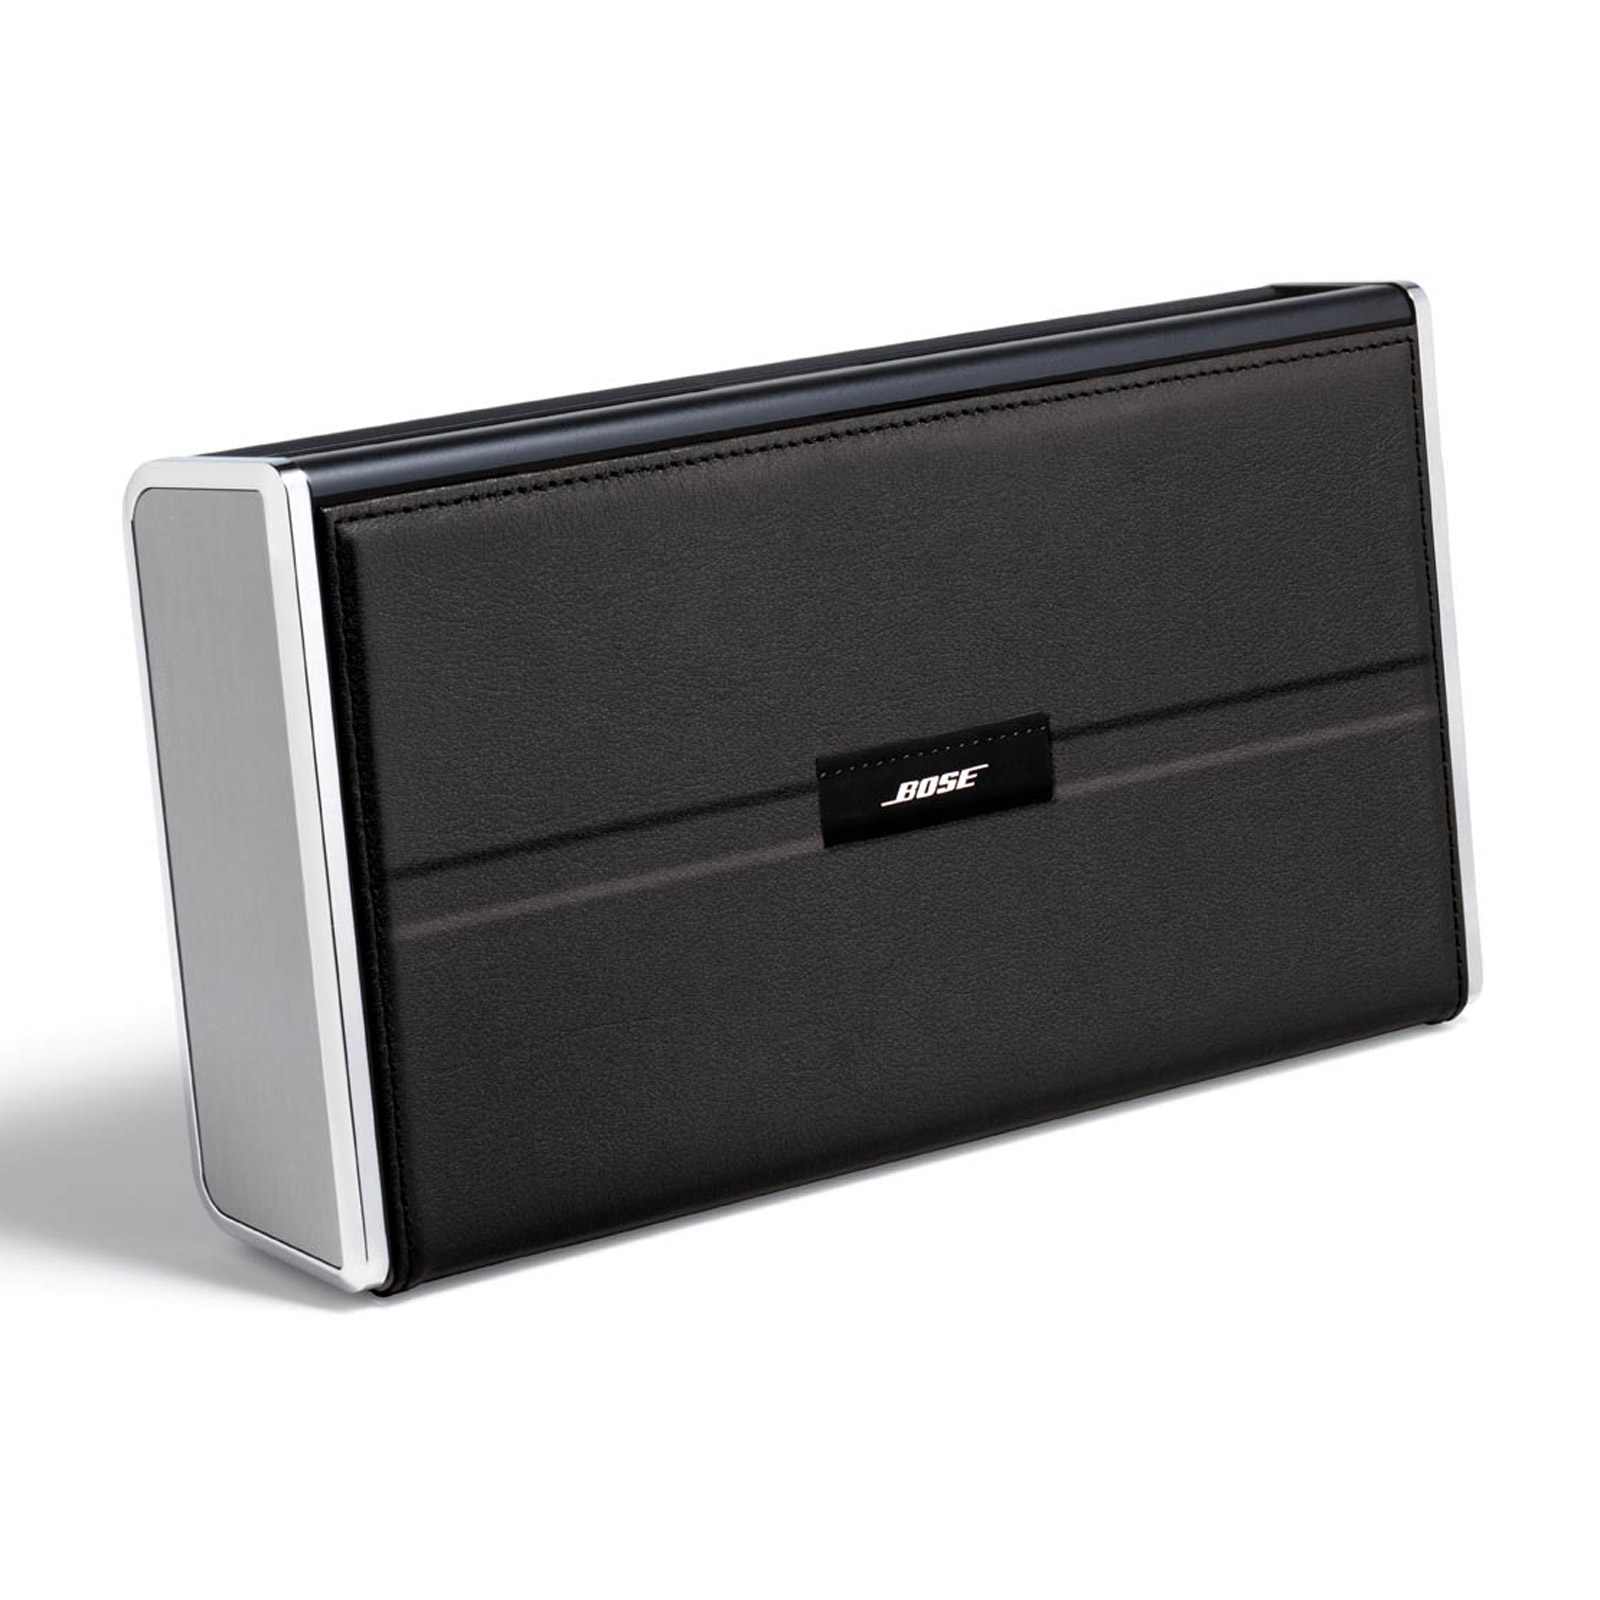 bose soundlink ii cuir dock enceinte bluetooth bose. Black Bedroom Furniture Sets. Home Design Ideas